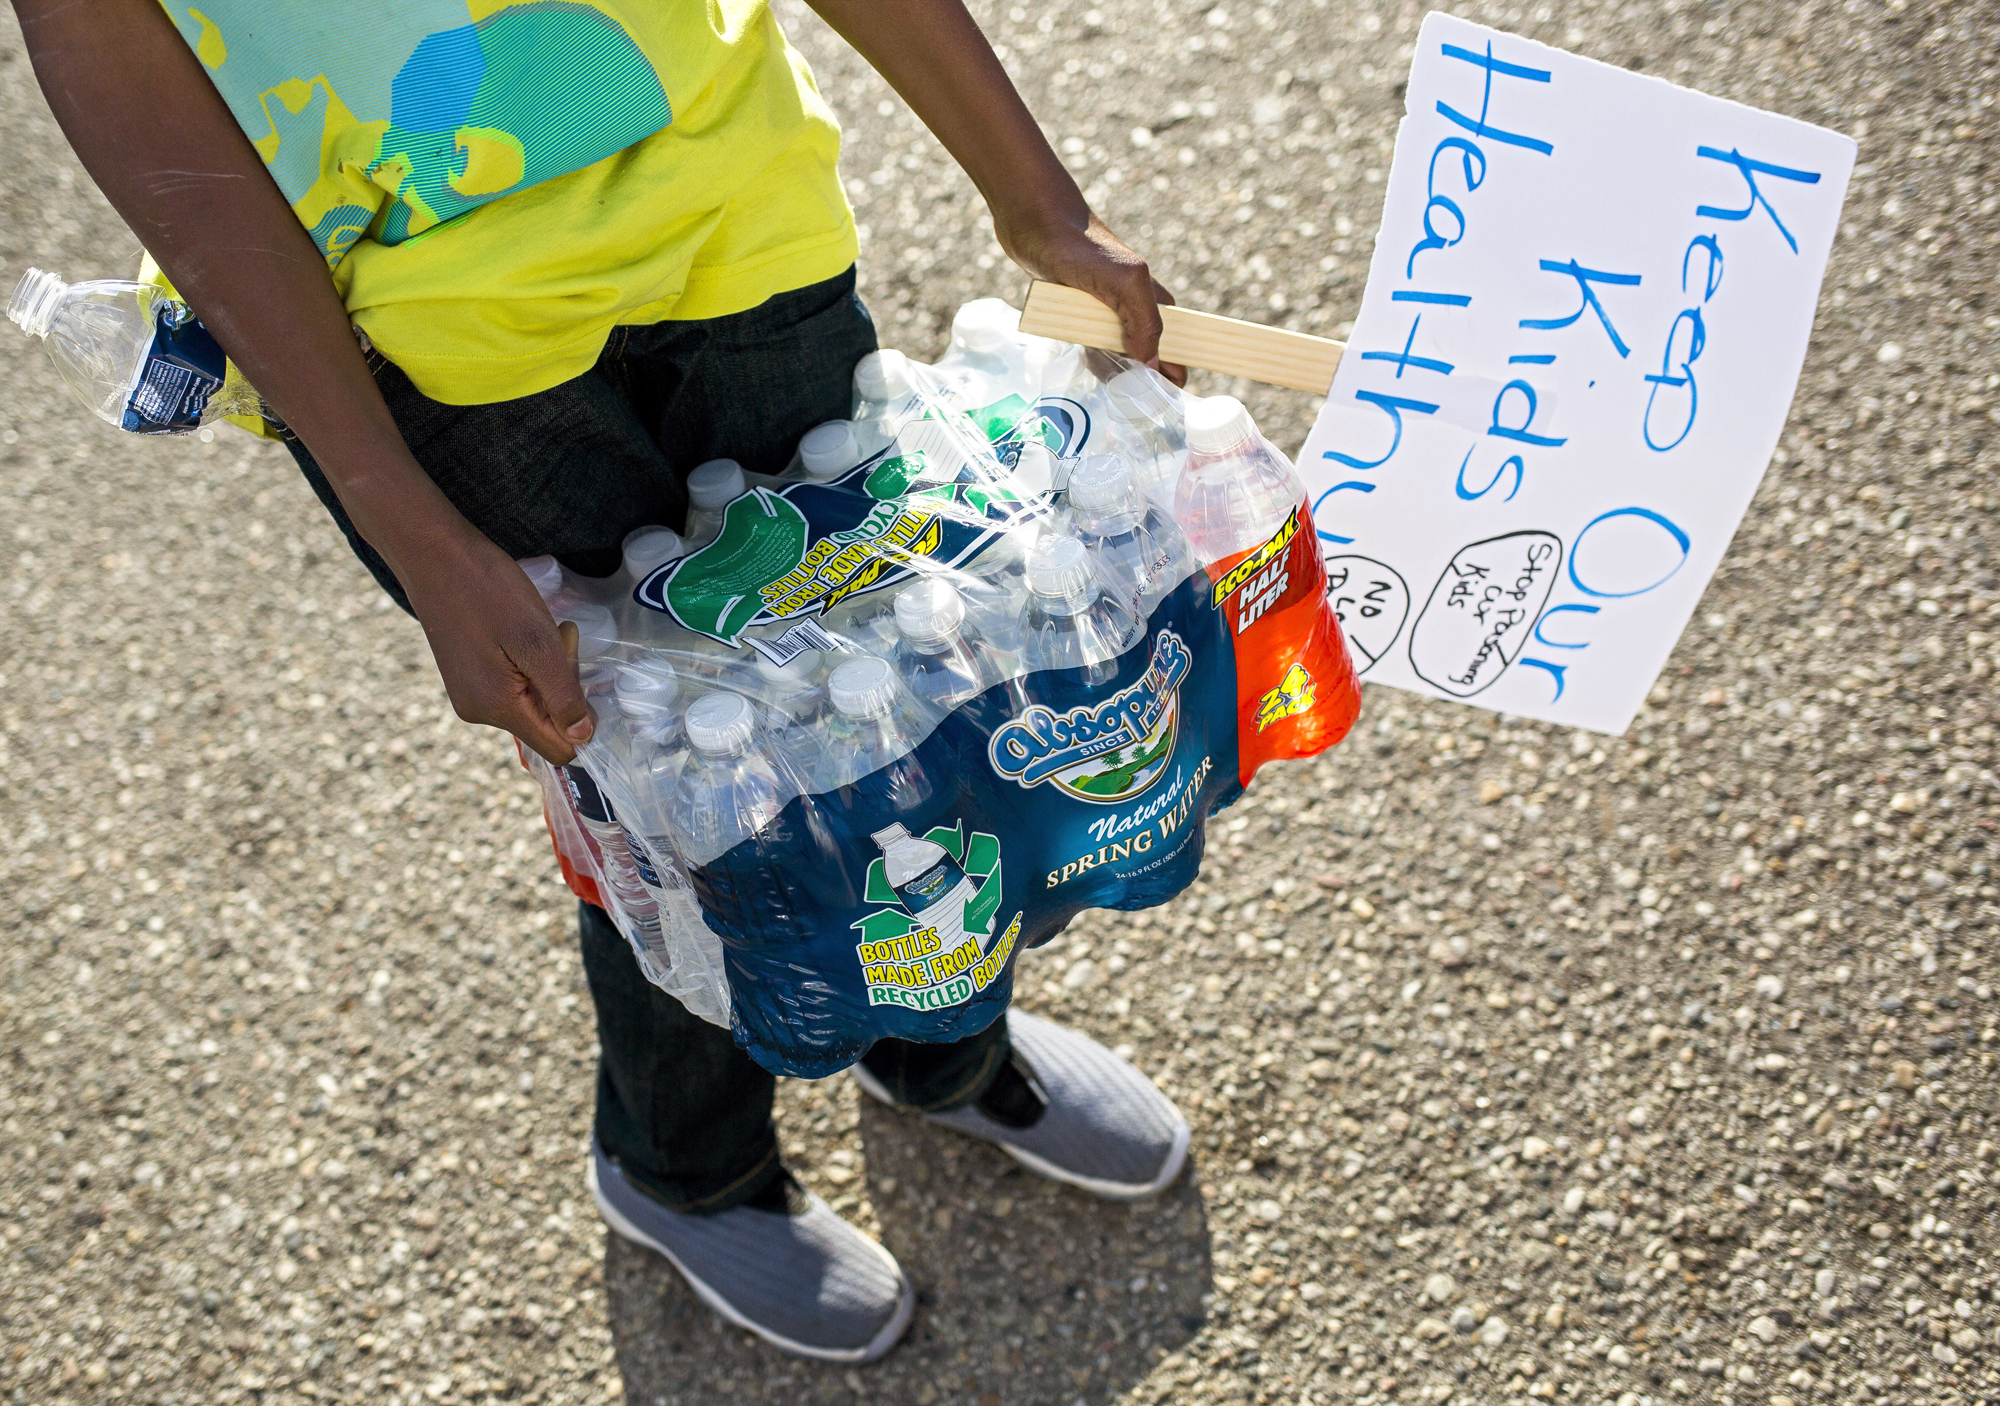 Danny Miller/The Flint Journal-MLive.com via AP